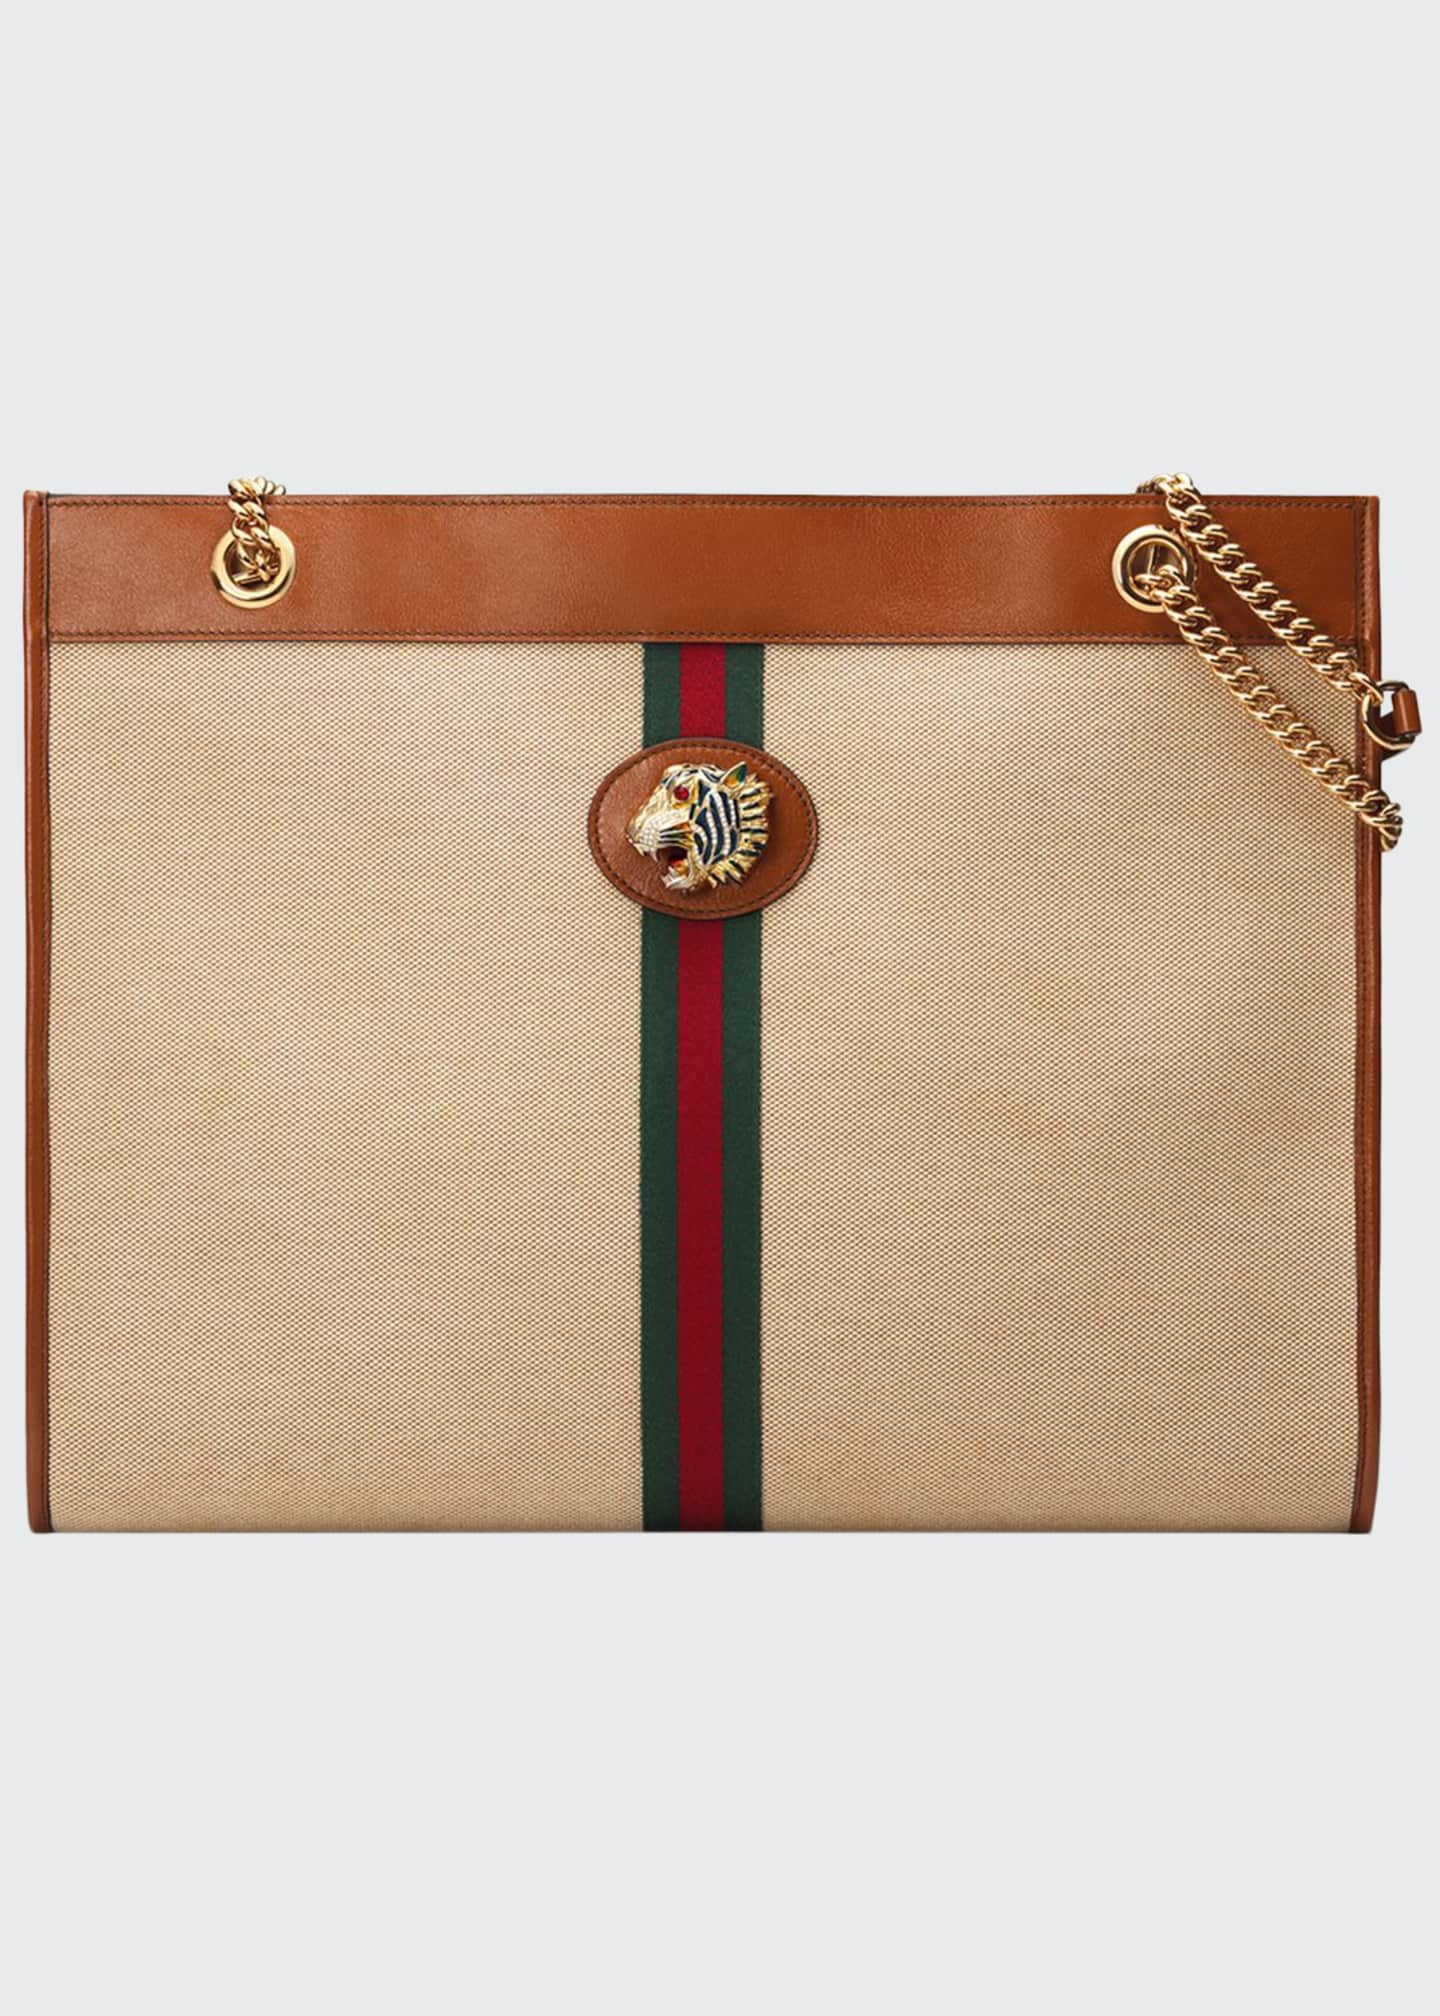 Gucci Rajah Large Canvas Tote Bag